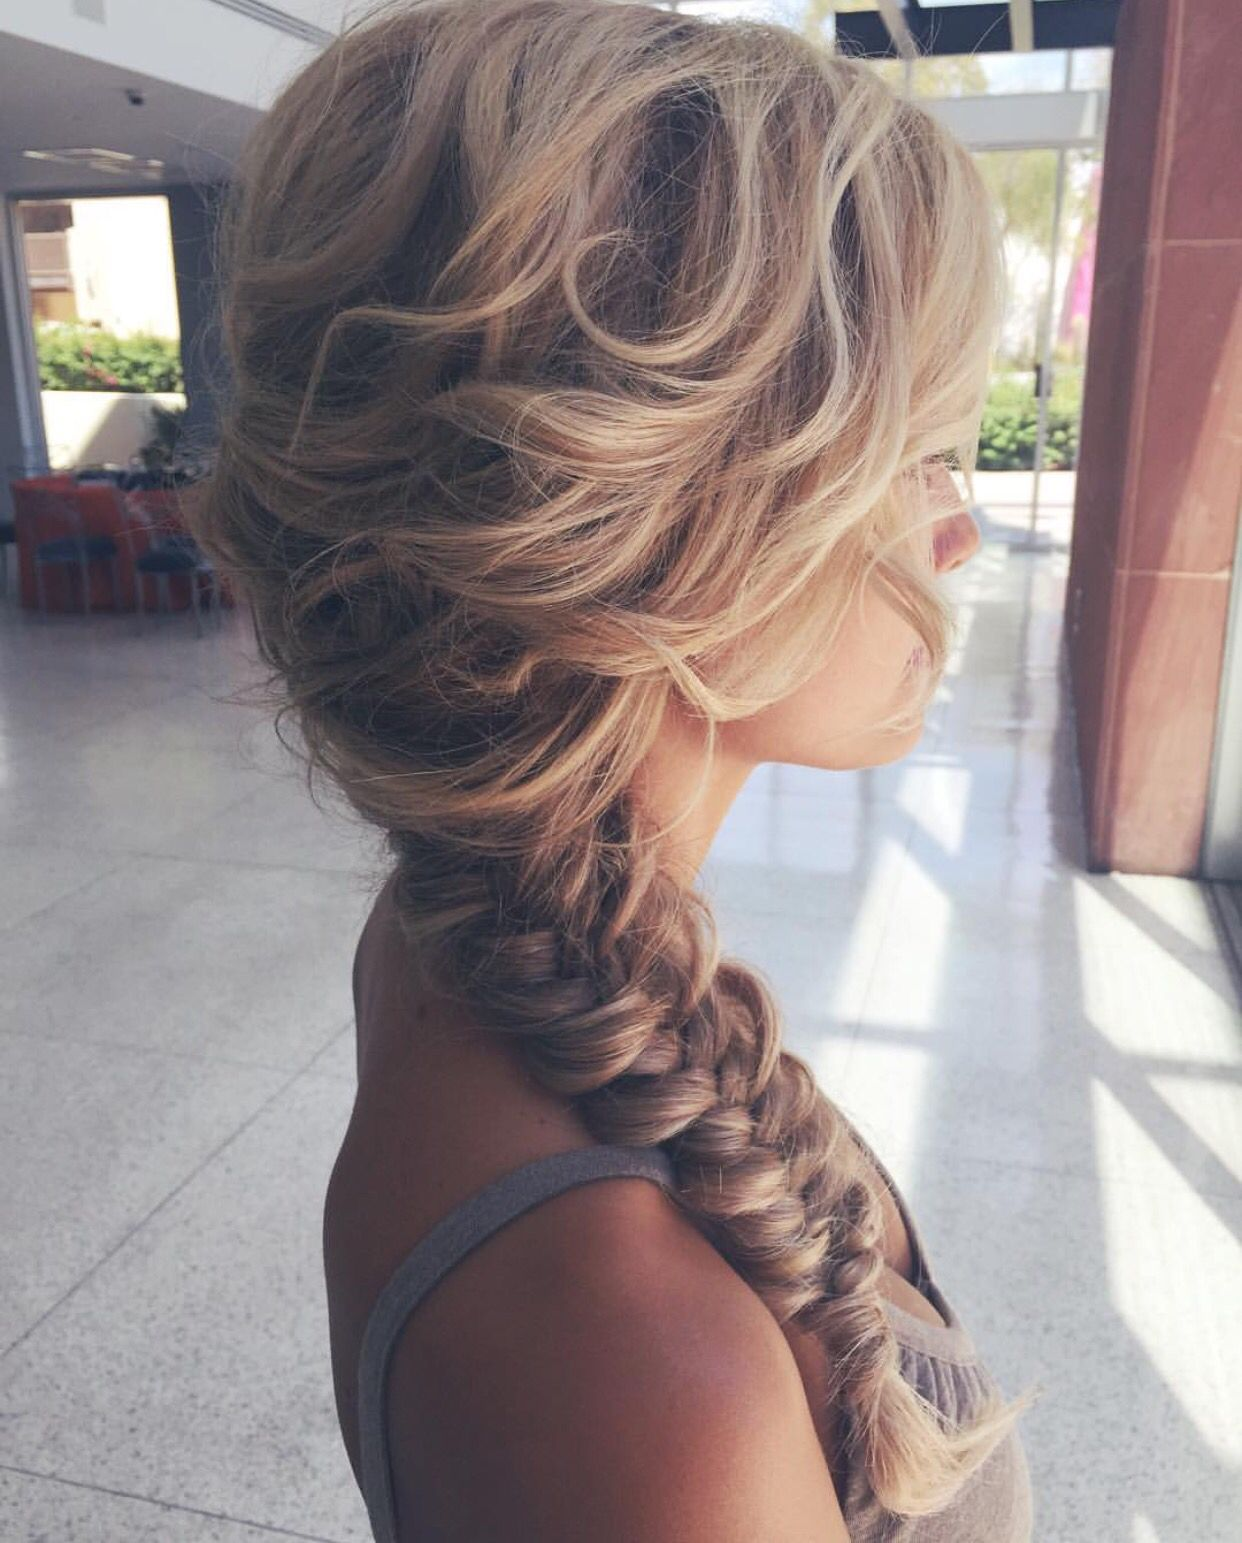 Fishtail Braid Wedding Hairstyles: Braided Hairstyles, Simple Prom Hair